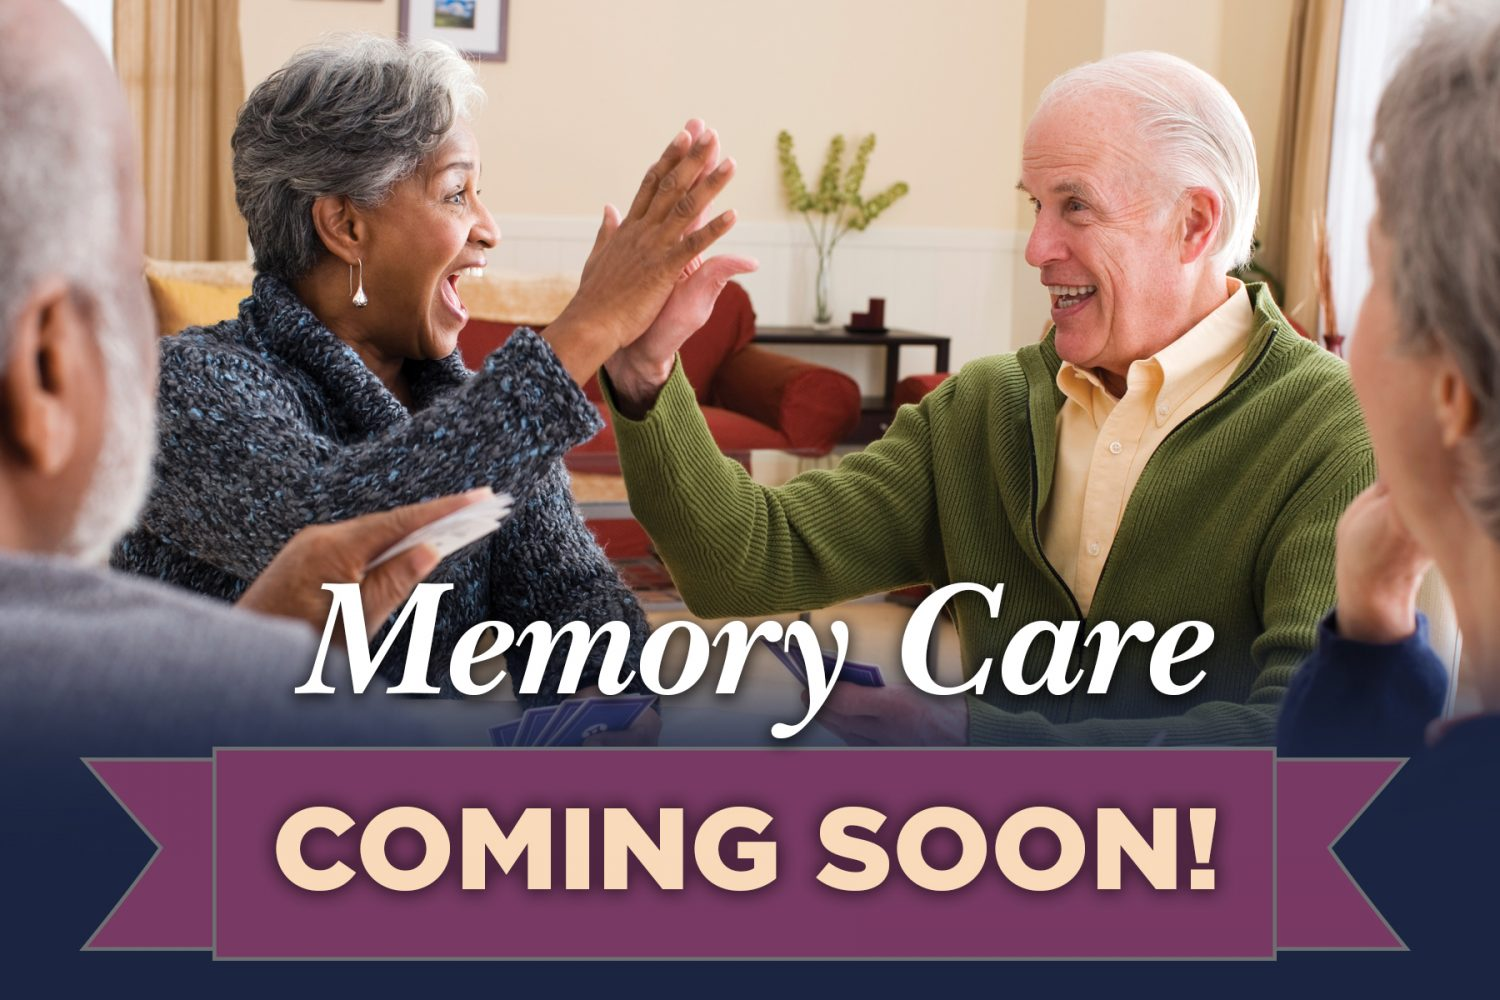 Heritage Woods Receives Approval for Memory Care